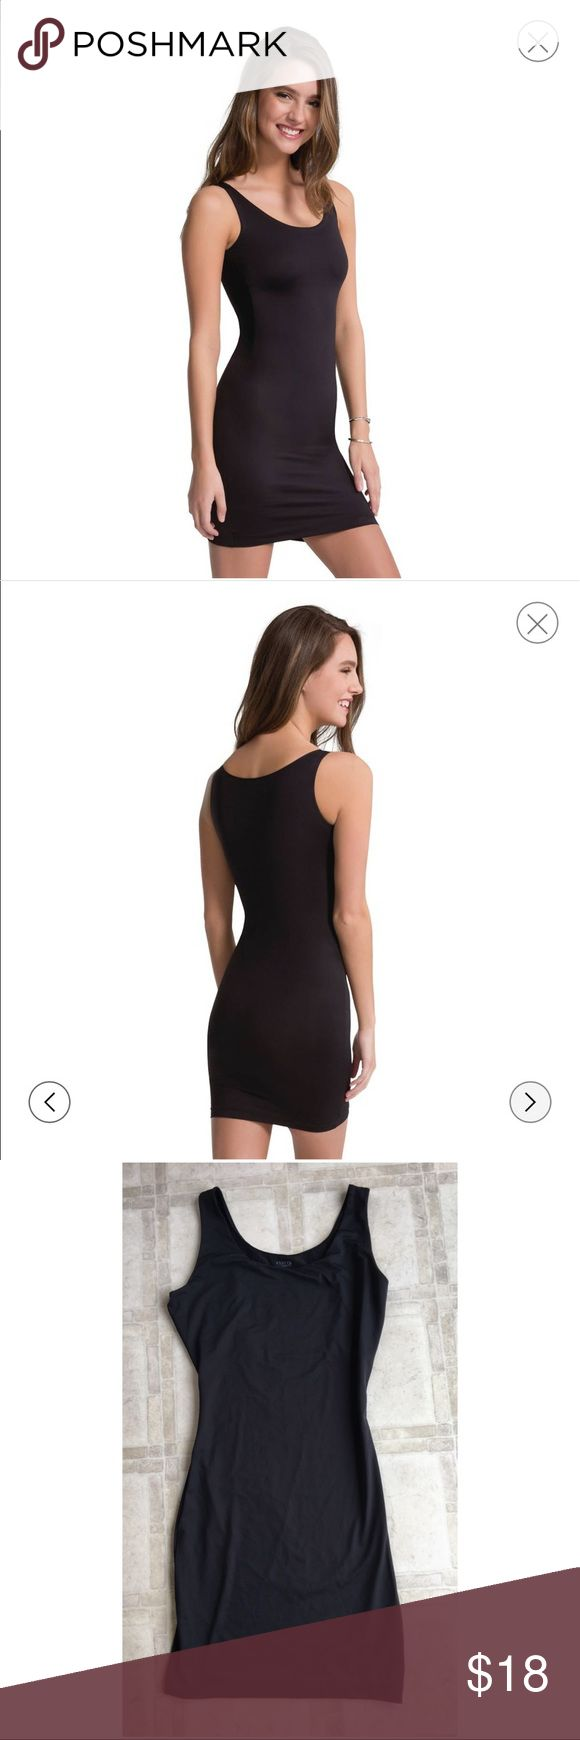 Assets by Spanx Women In or Out Shaping Full Slip New without tags.  This double-duty slip can be worn inside or out! With an inner power-mesh that firms in all the right places • Inner front power mesh slims the tummy, hips and thighs • Slick fabric won't cling to clothes! • Wider straps keeps bra completely hidden • Wear as a layering piece or to be seen • Body & Lining: 82% Nylon, 18% Spandex/Elastane. Bust Lining: 90% Nylon, 10% Spandex/Elastane Closure Style: Pullover, Care and…